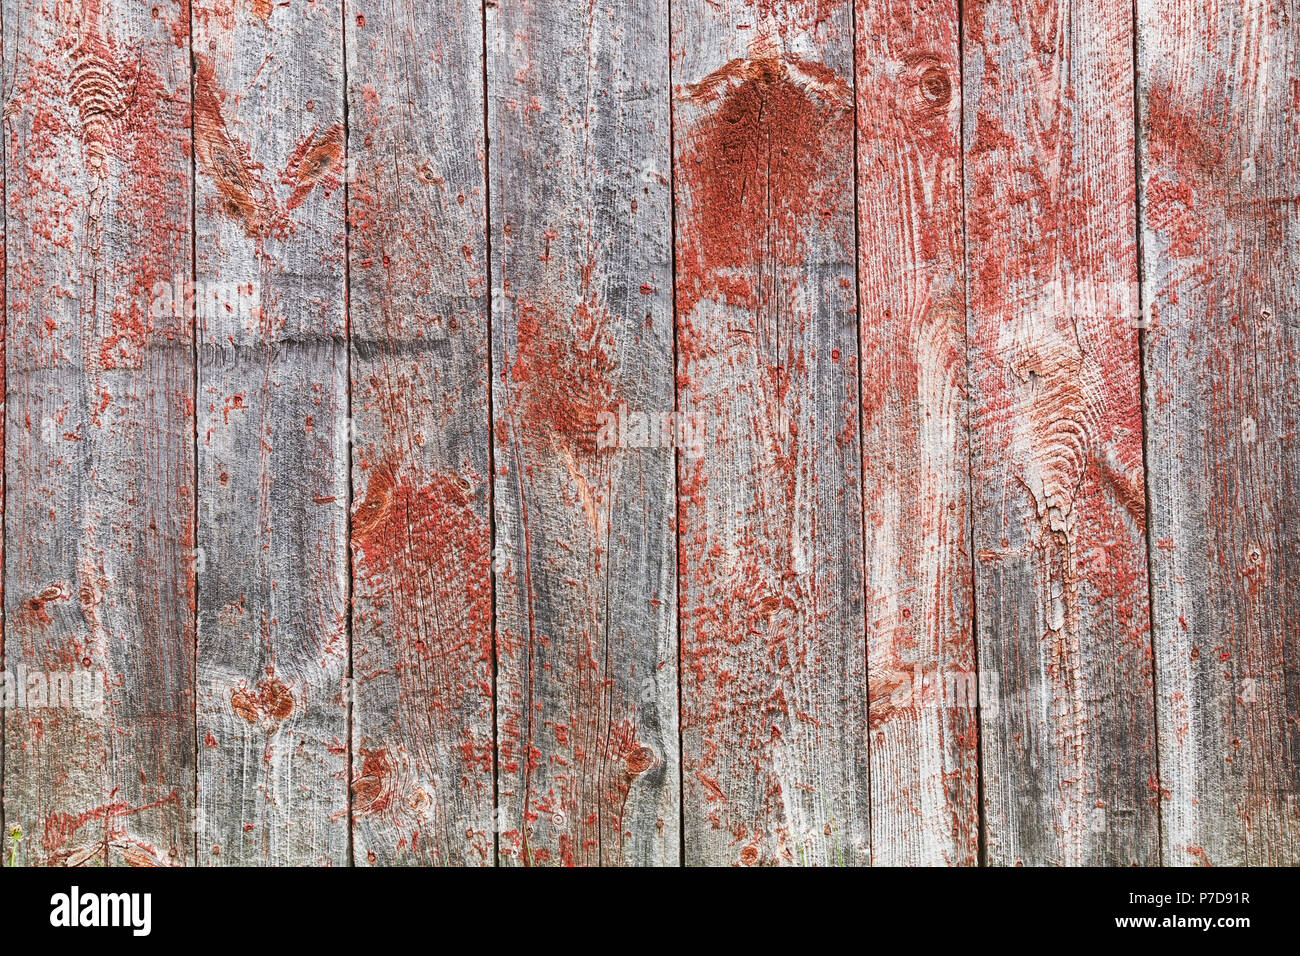 Close-up of old wooden grey and red painted barn wood planks, background image - Stock Image